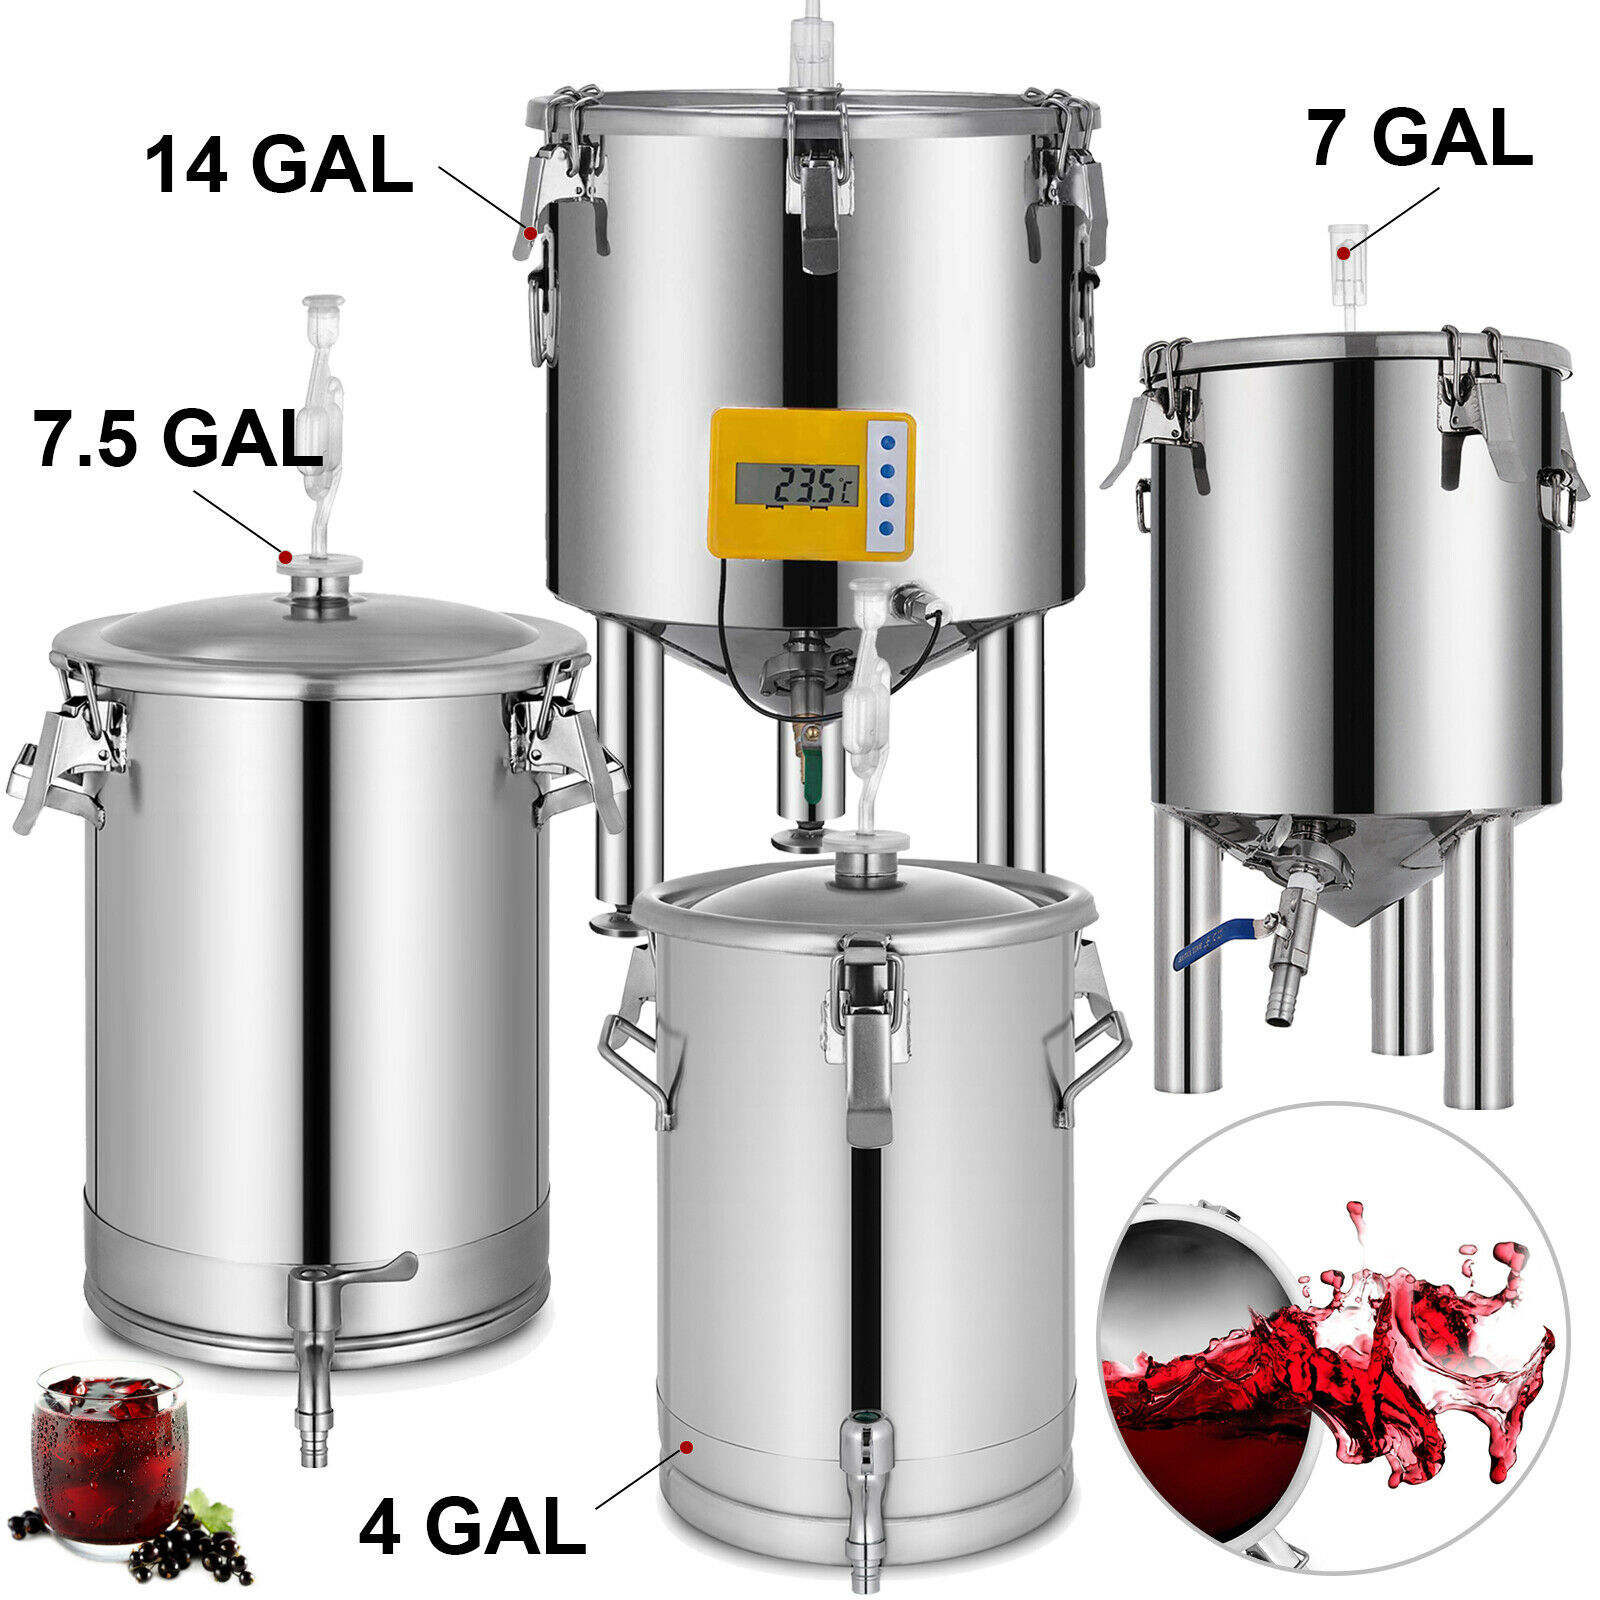 Brew Bucket Fermentor 304 Stainless Steel Conical Beer Wine Fermenter 4,7,7.5,14 Gallon